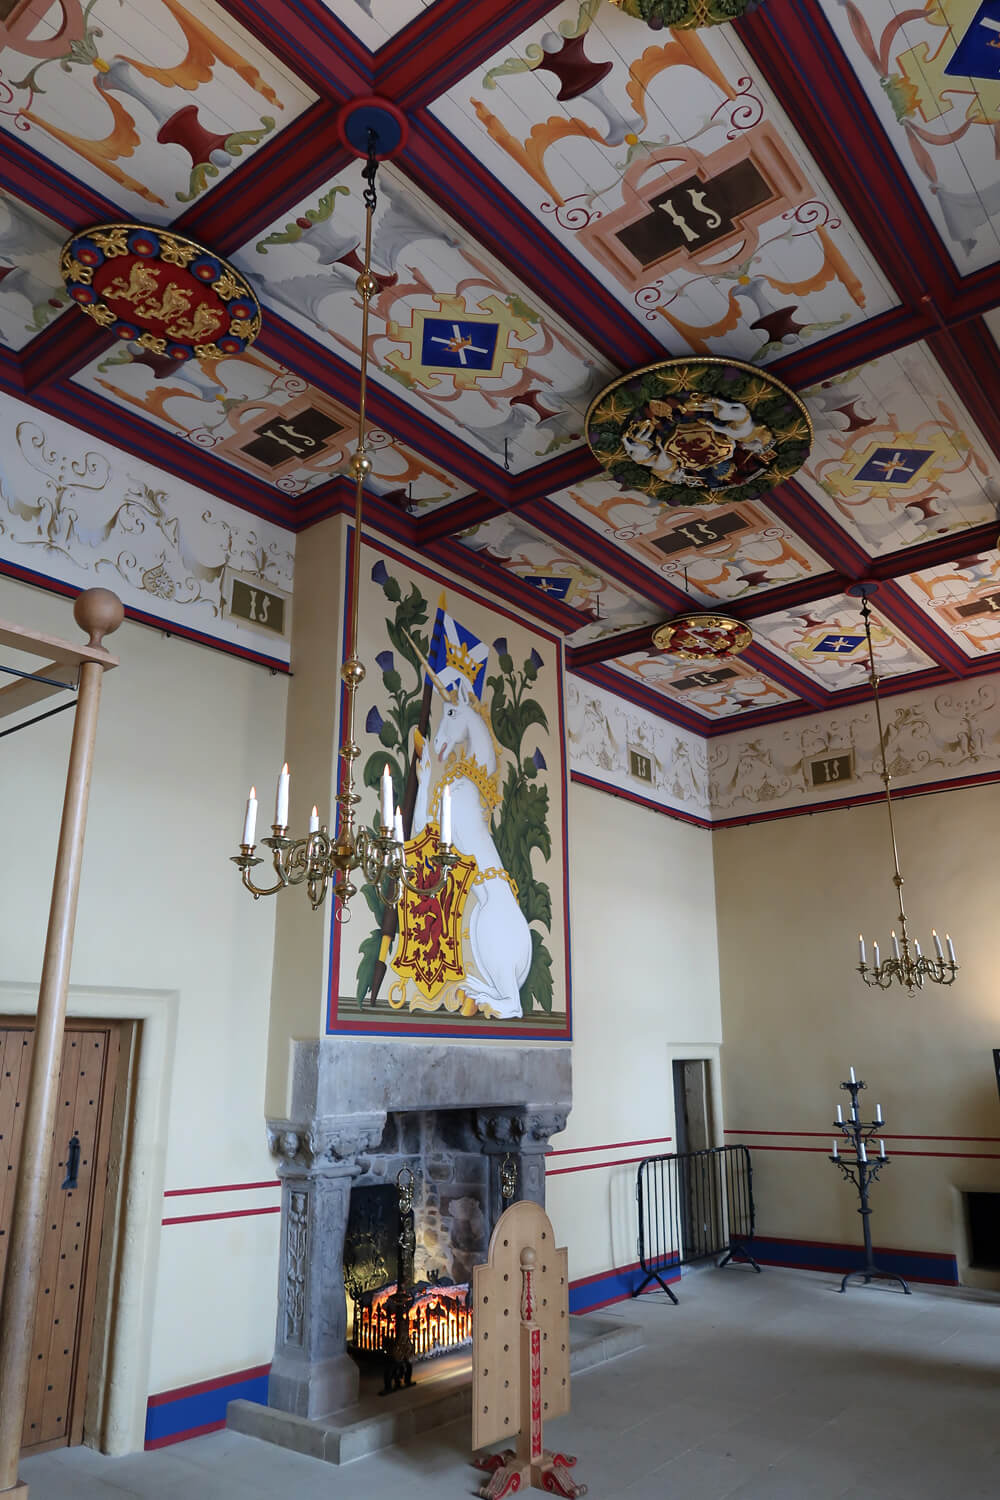 The Royal Palace at Stirling Castle